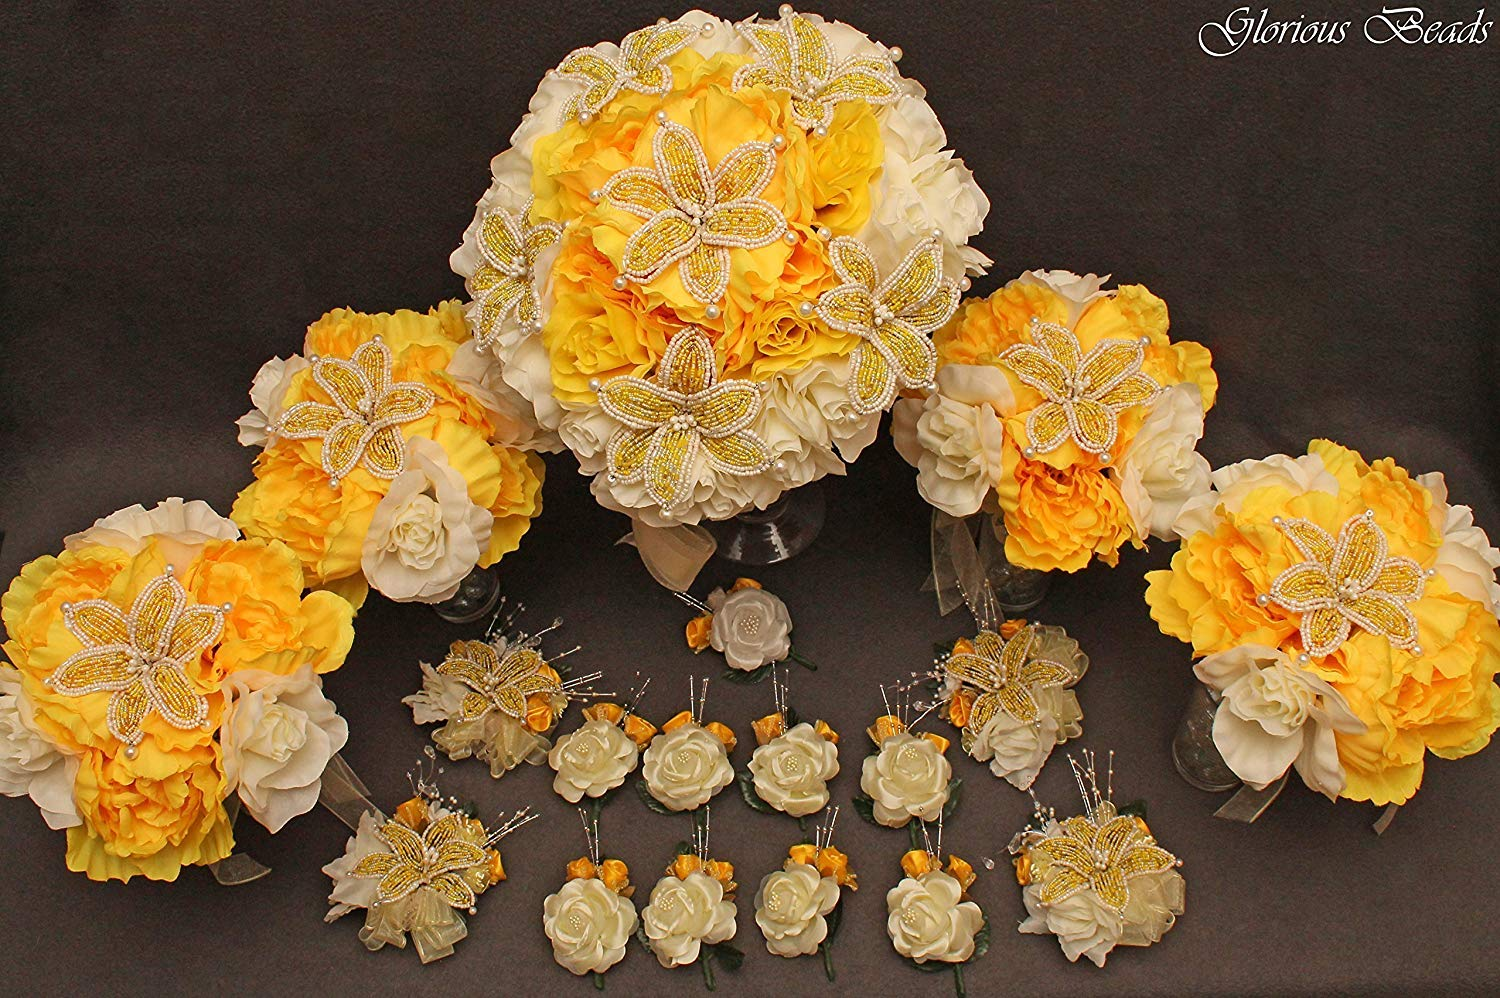 YELLOW and Ivory Beaded Lily Bridal Wedding Flower 18 piece set with Peonies and Roses~ Unique French beaded flowers. Bouquets Corsages and Boutonnieres